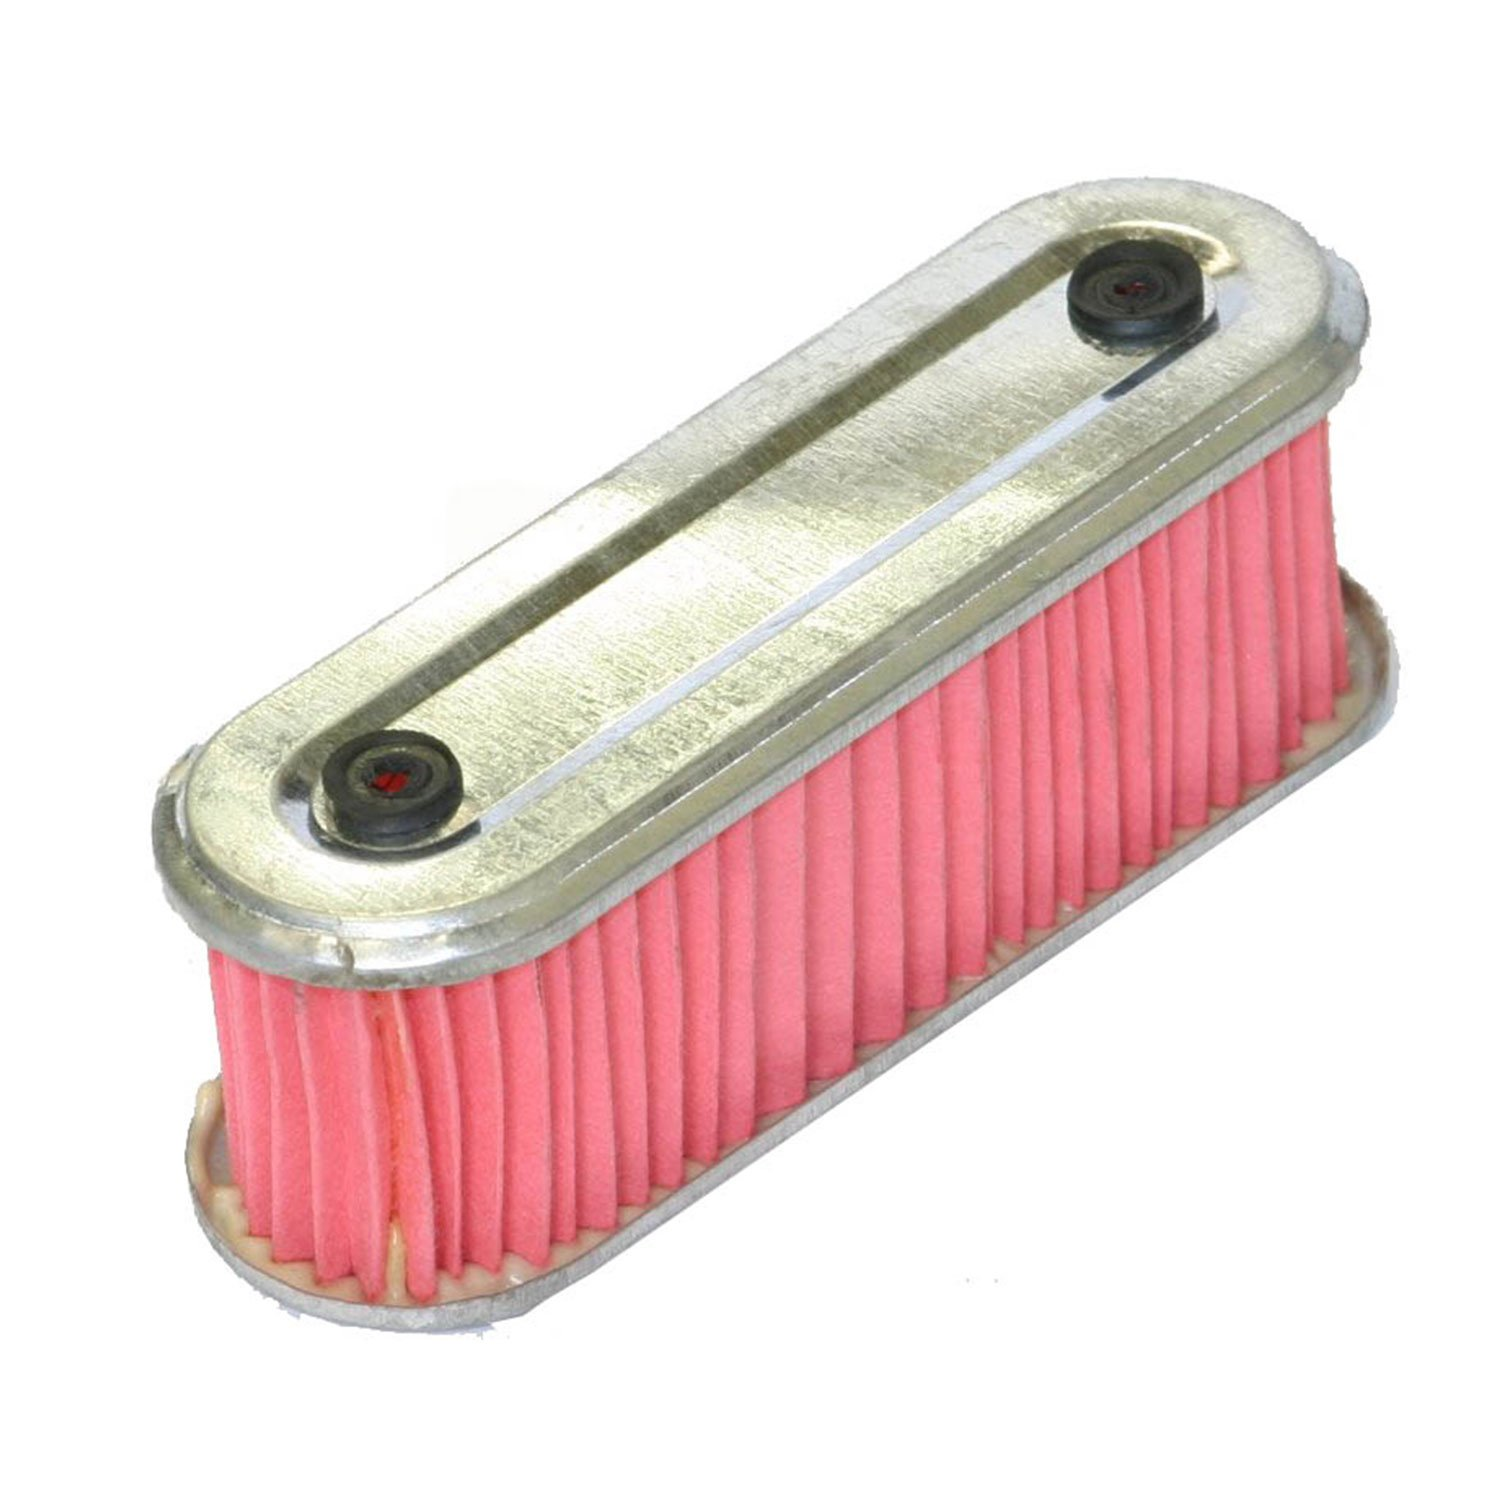 Filtro Aire Motor para cortacésped OHV ip60 F NGP - topower - Daye ...